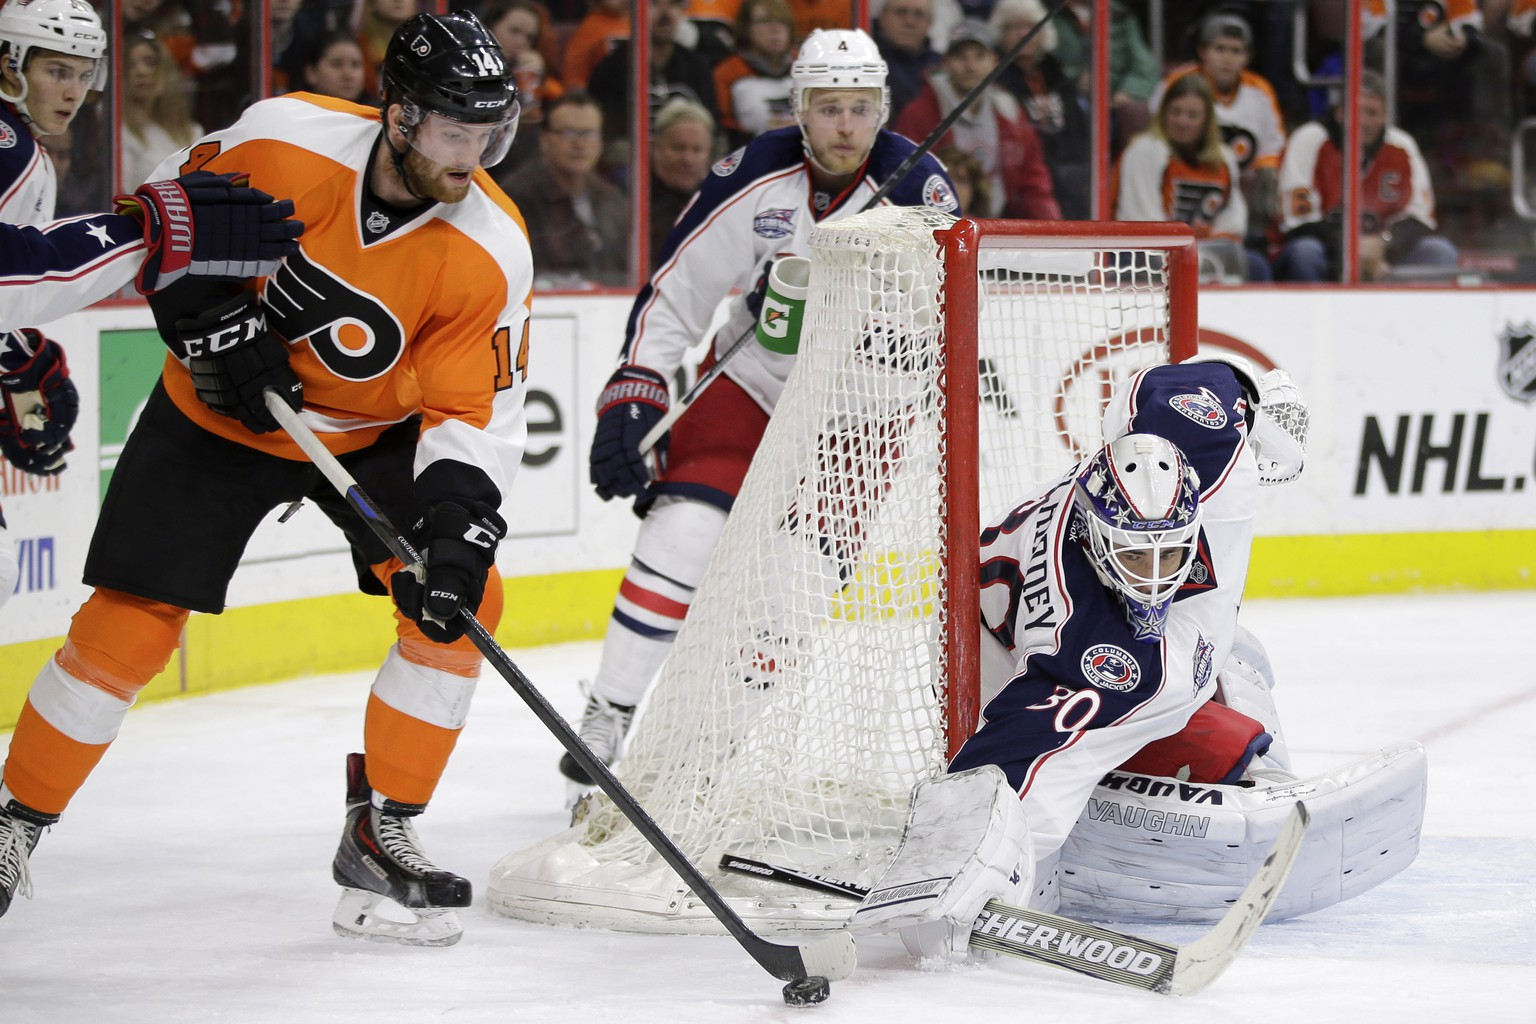 Philadelphia Flyers' Sean Couturier (14) tries to get a shot past Columbus Blue Jackets' Curtis McElhinney (30) during the second period of an NHL hockey game Tuesday, Feb. 17, 2015, in Philadelphia. (AP Photo/Matt Slocum)